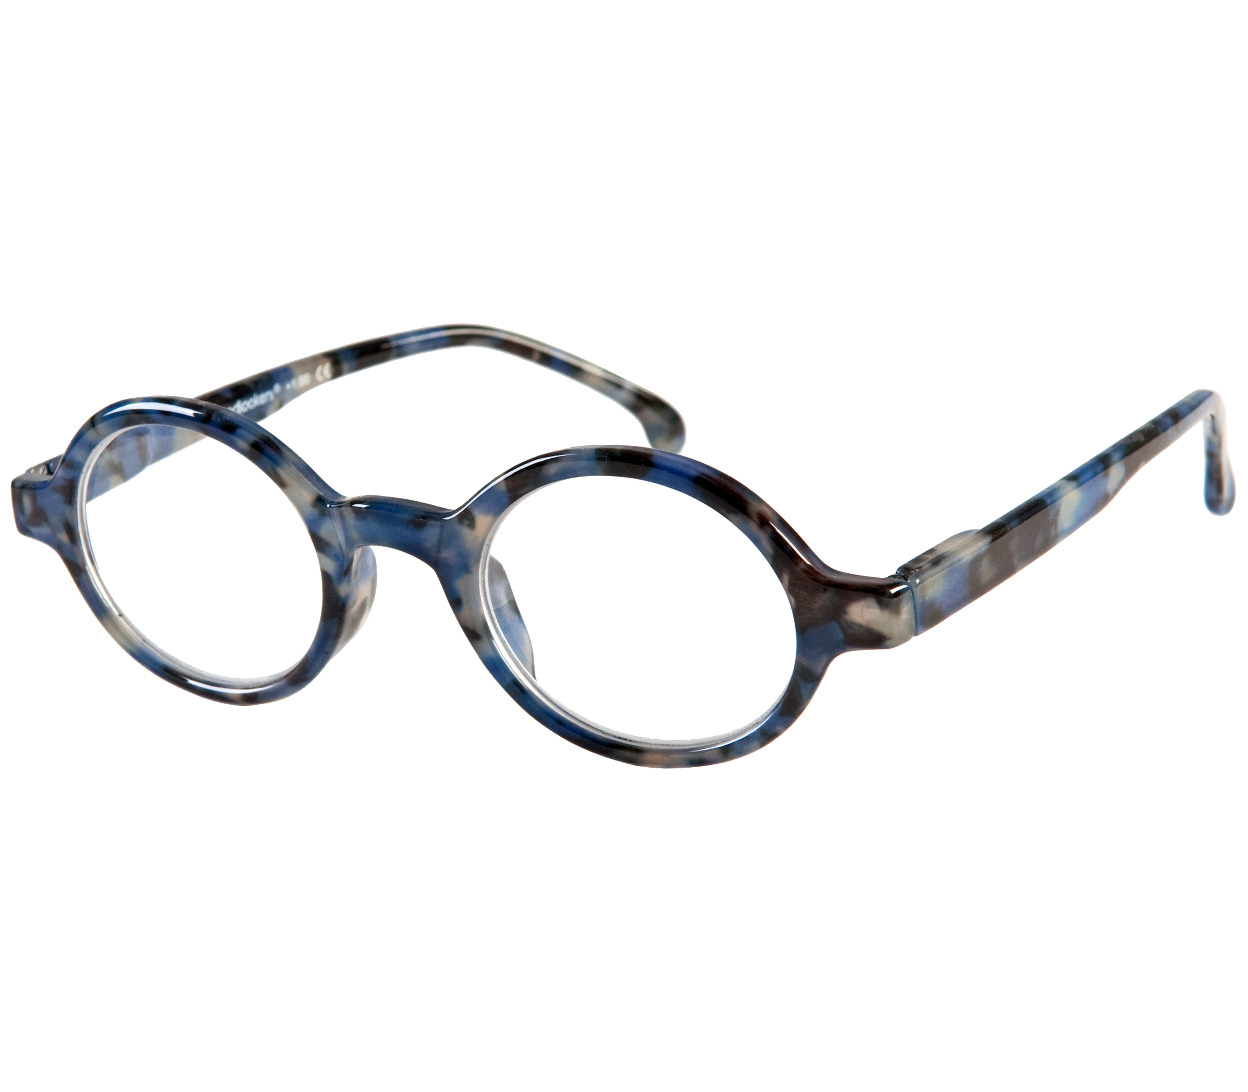 Main Image (Angle) - Kensington (Blue) Retro Reading Glasses